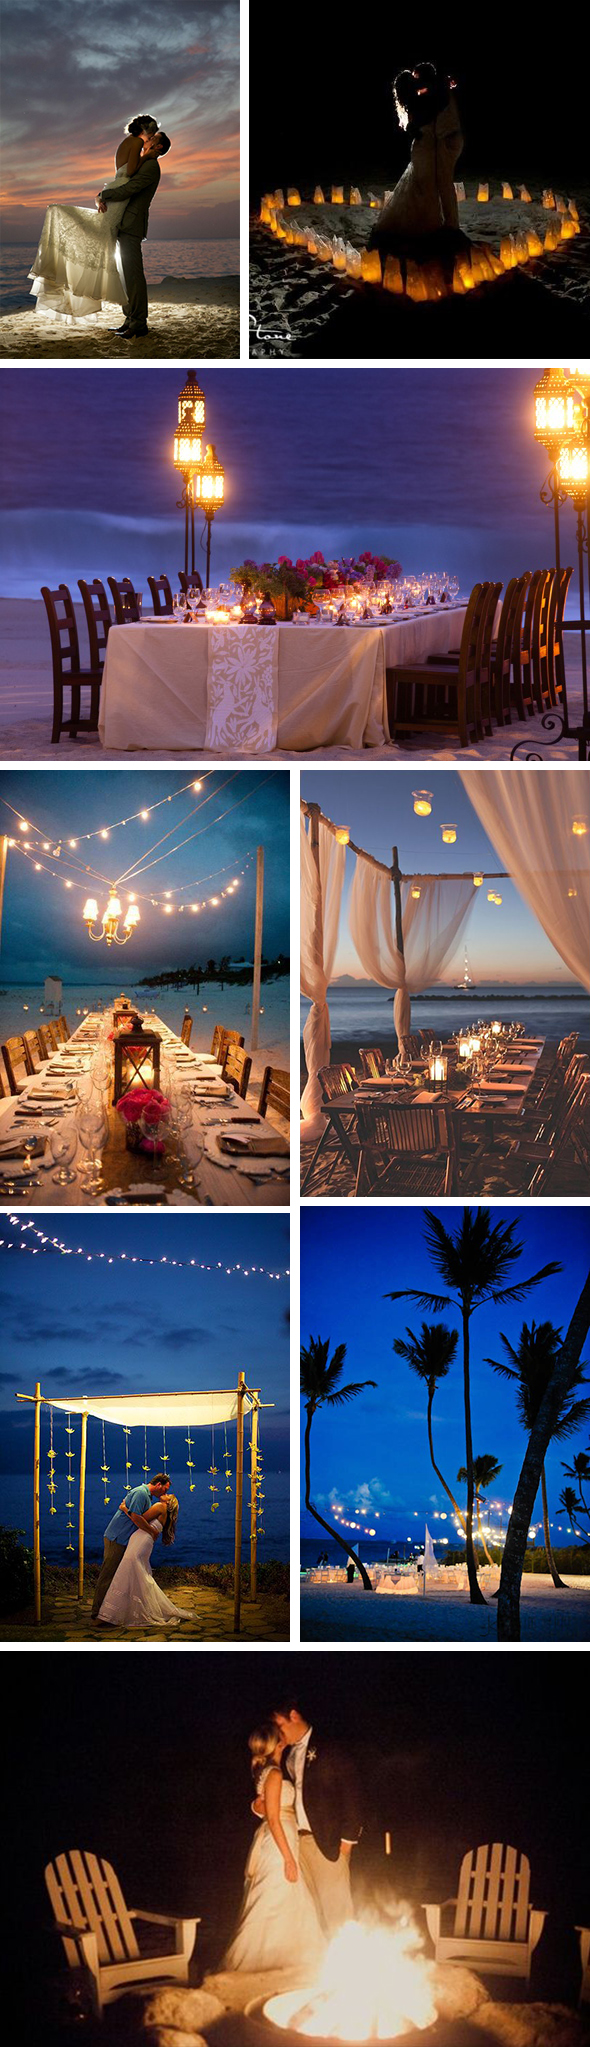 night beach weddings